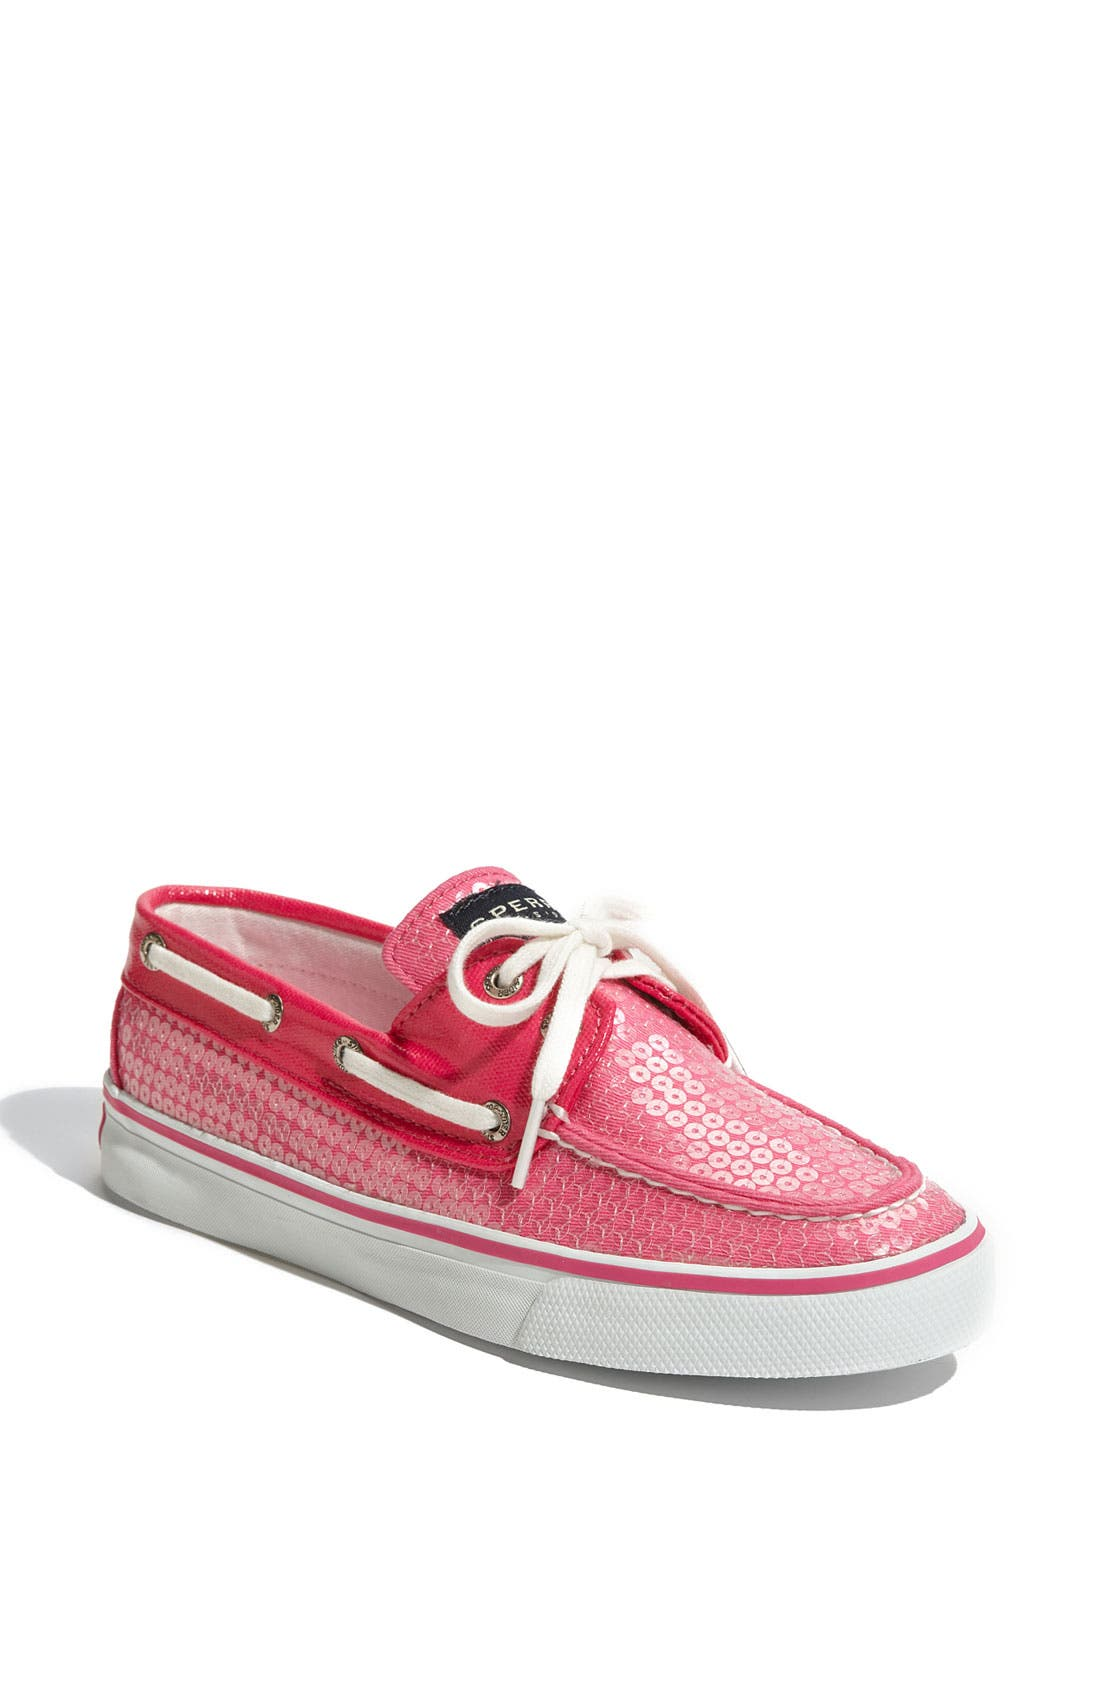 Top-Sider<sup>®</sup> 'Bahama' Sequined Boat Shoe,                             Main thumbnail 37, color,